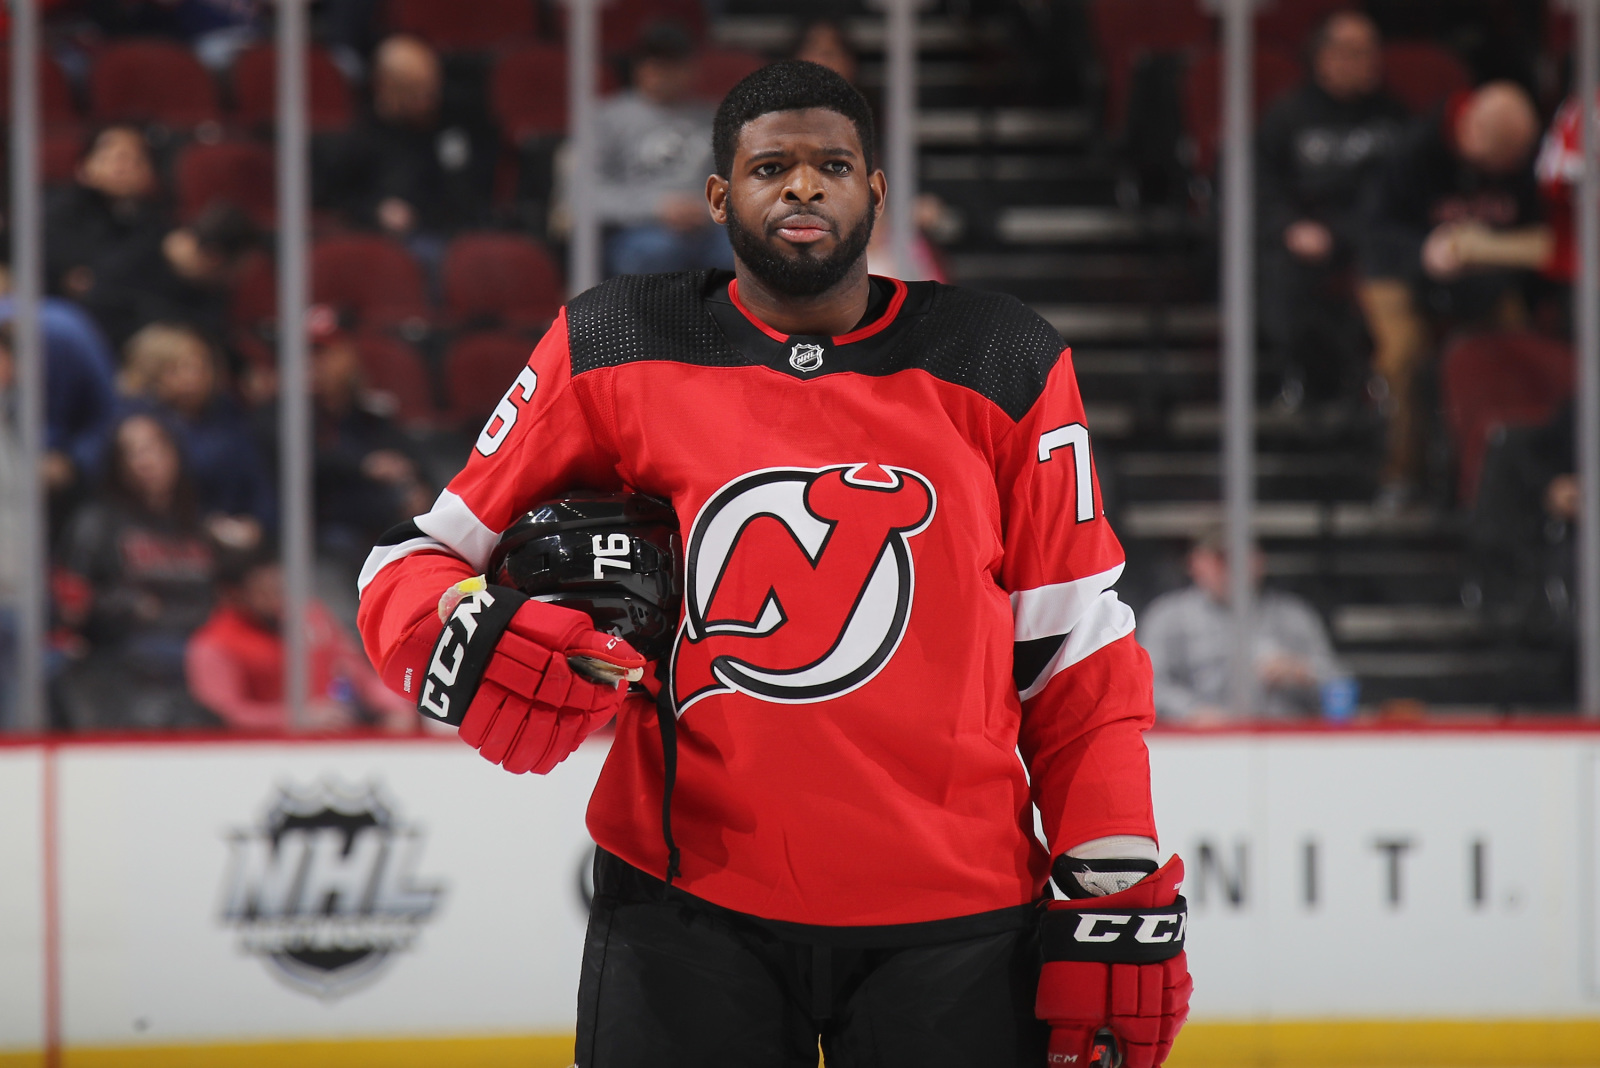 P.K. Subban supports a 31-team NHL playoff that includes his Devils